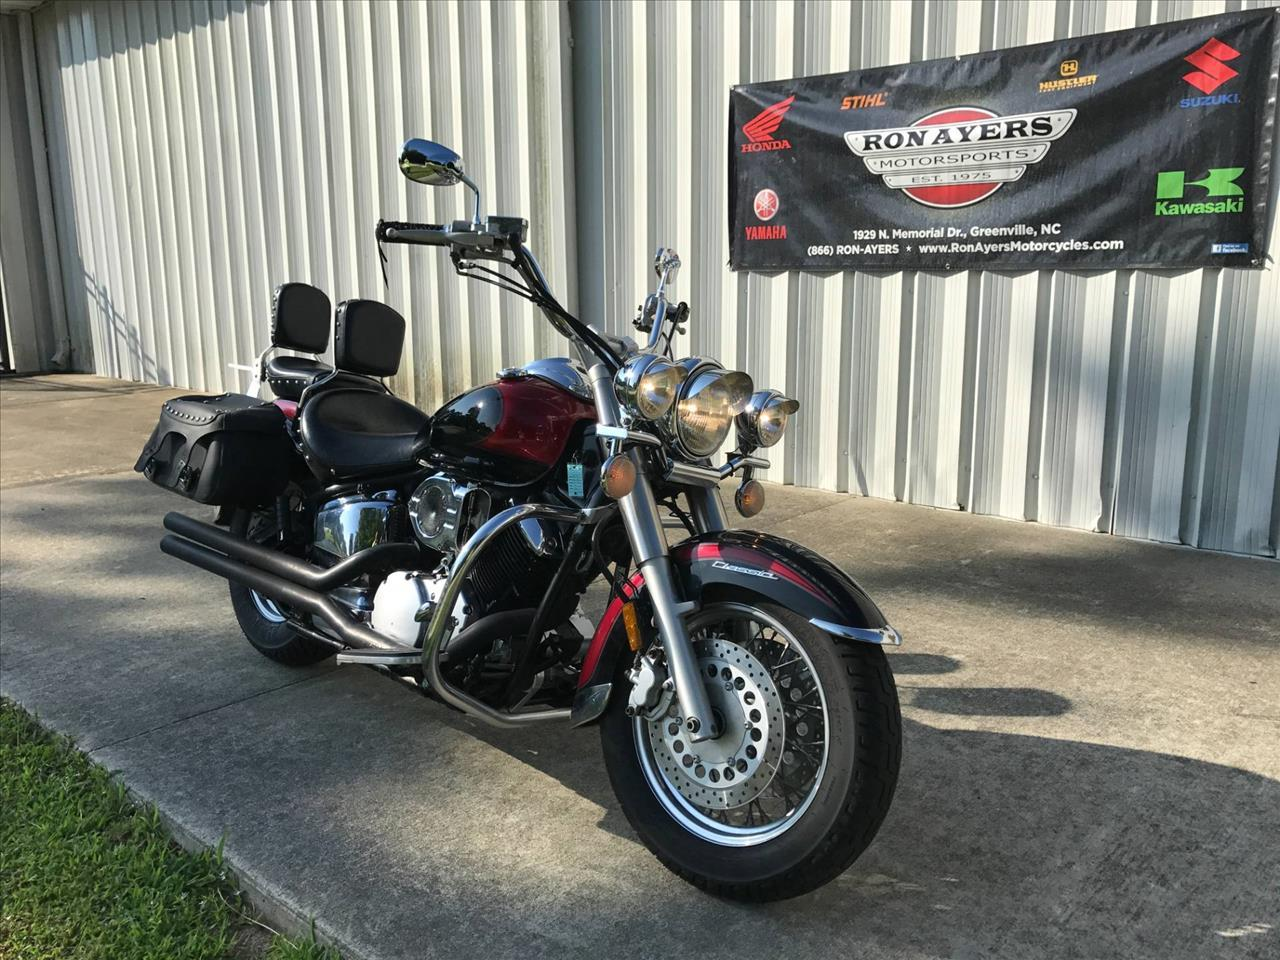 2002 Yamaha V-Star for sale at Vehicle Network, LLC - Ron Ayers Motorsports in Greenville NC